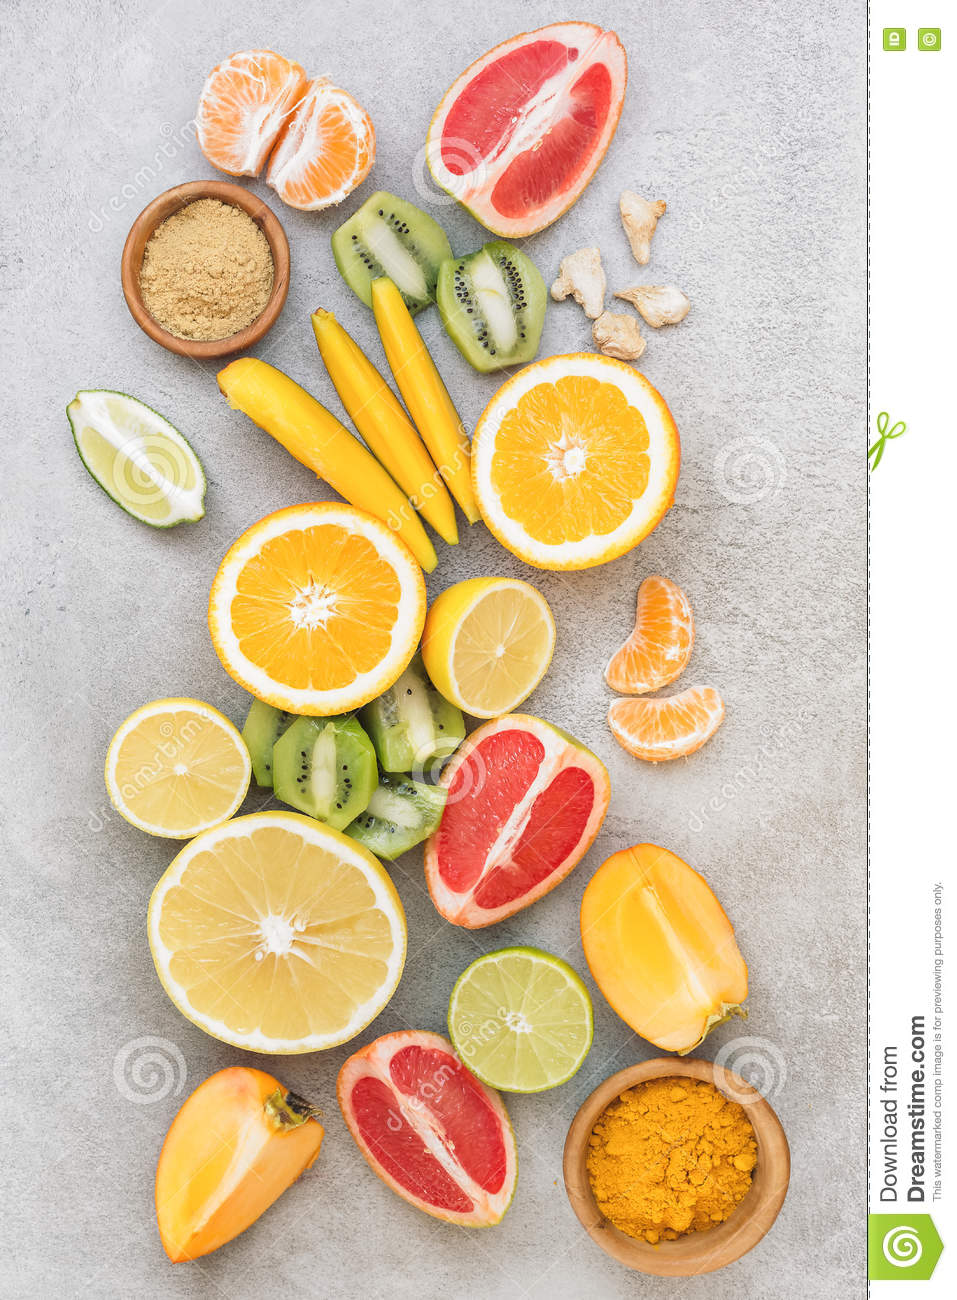 Slices of different fruits and spices